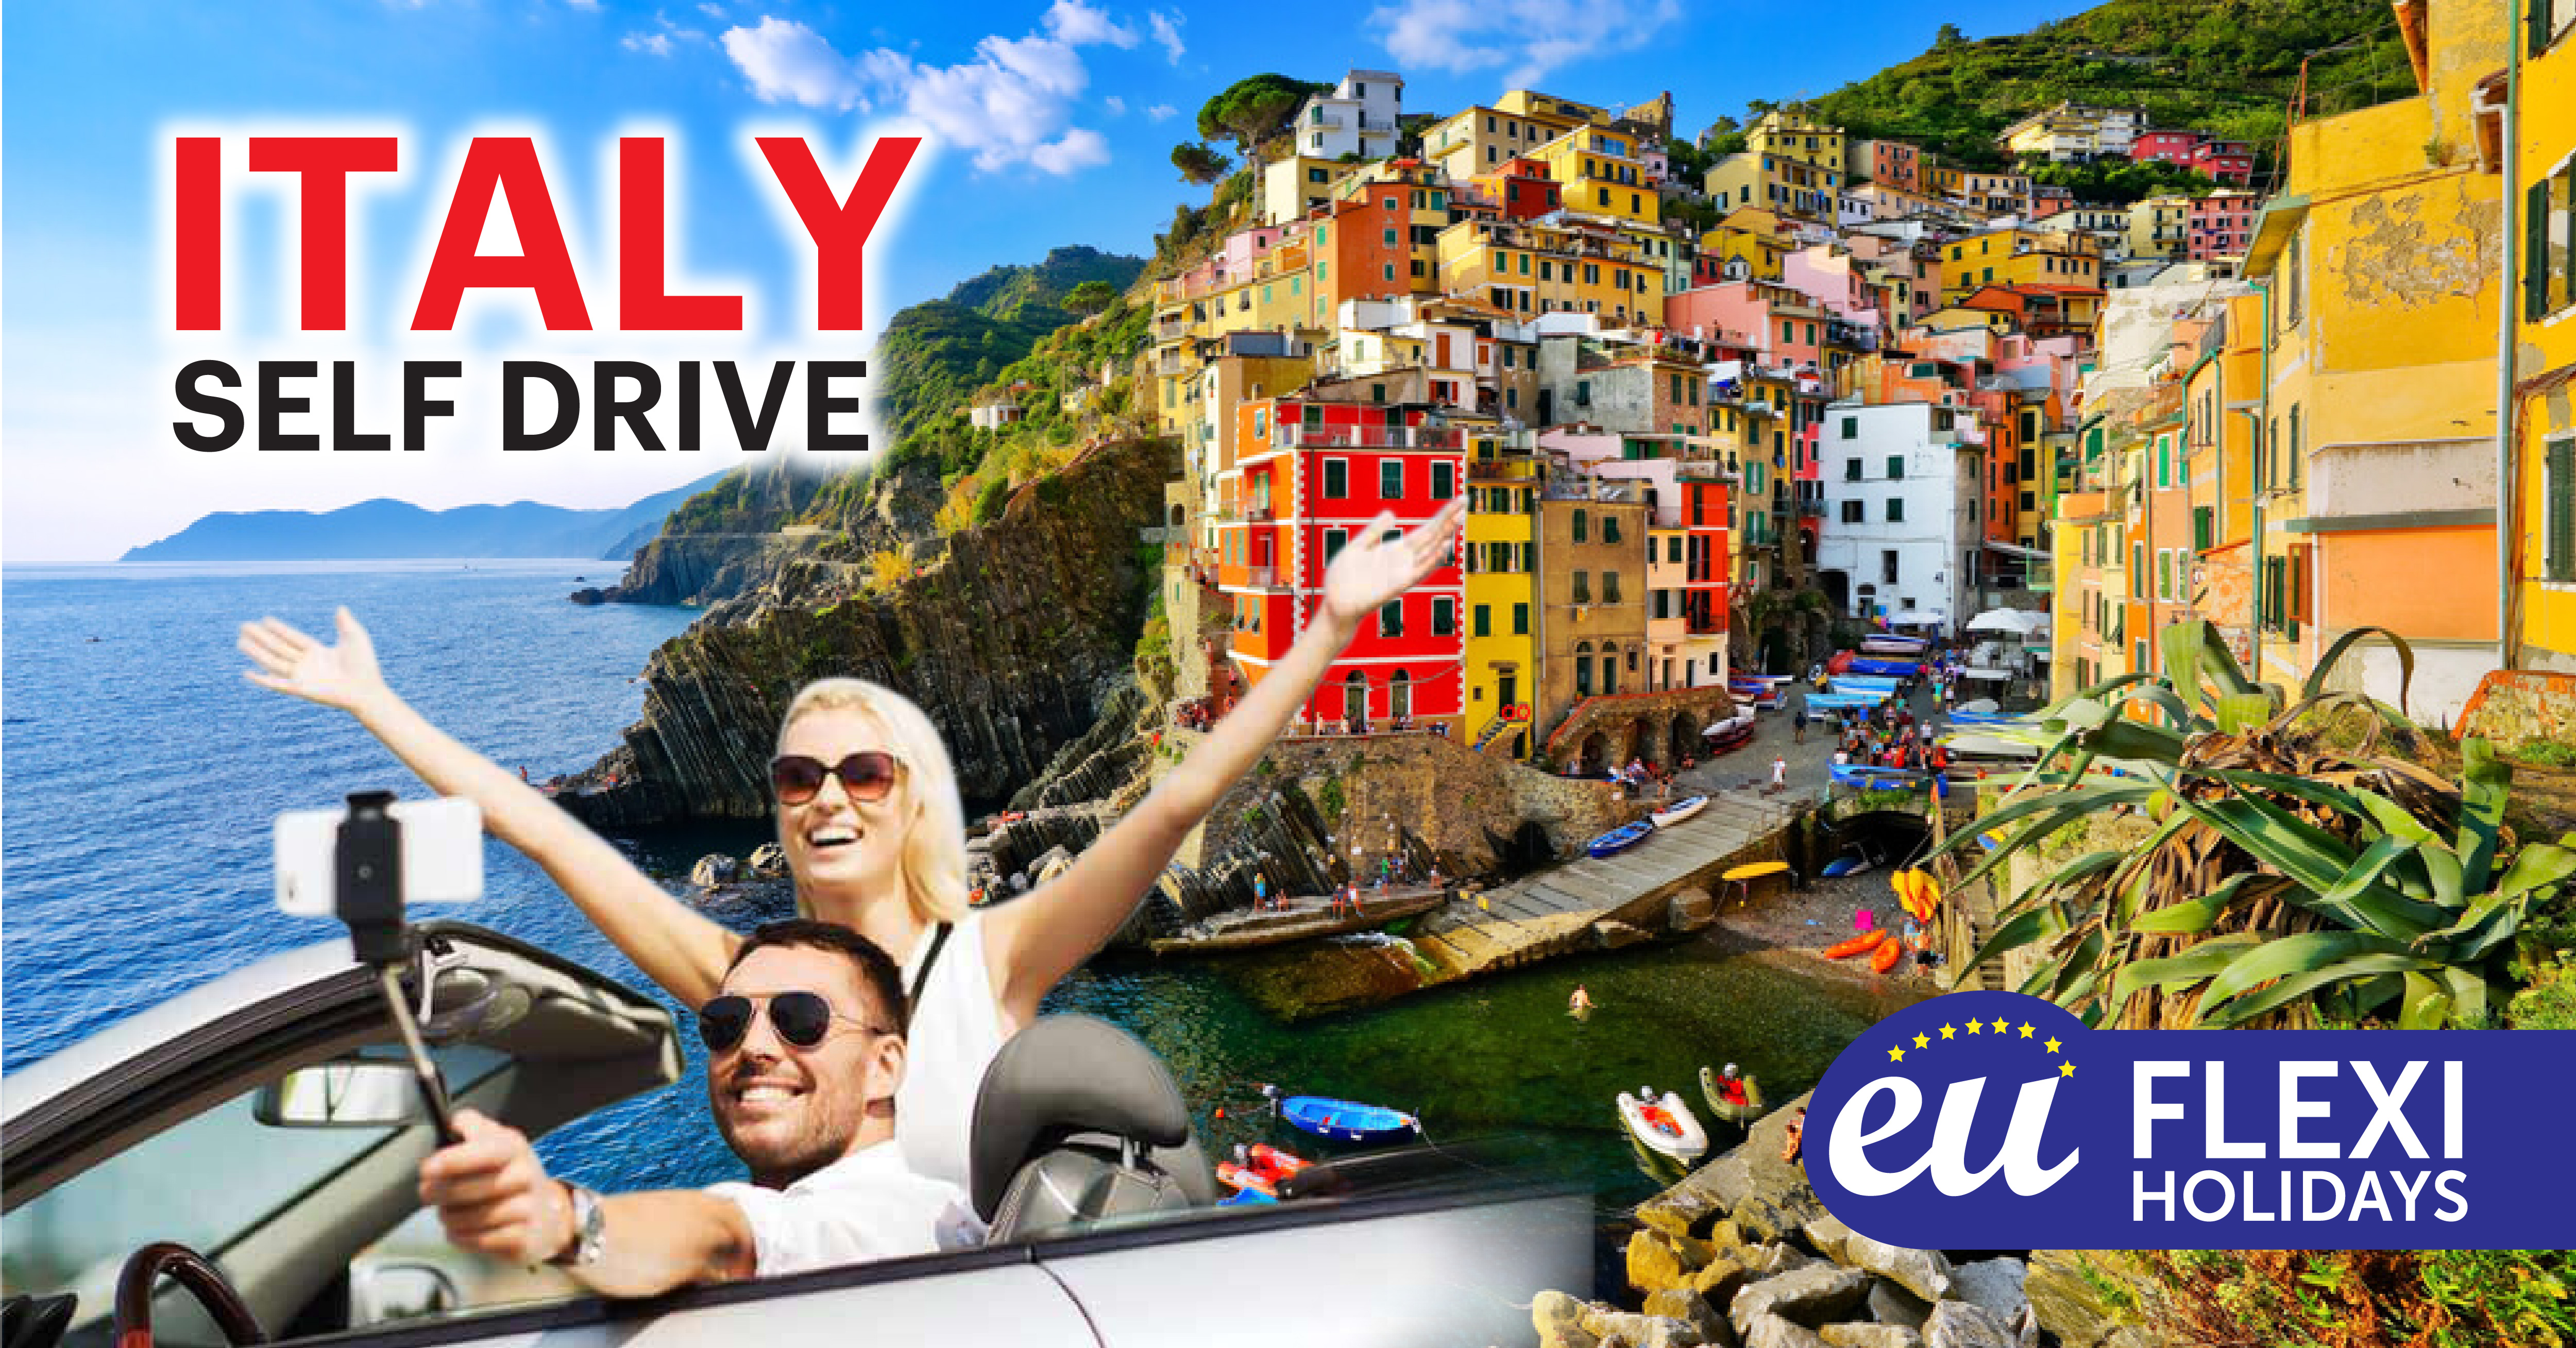 Italy tour packages from Singapore